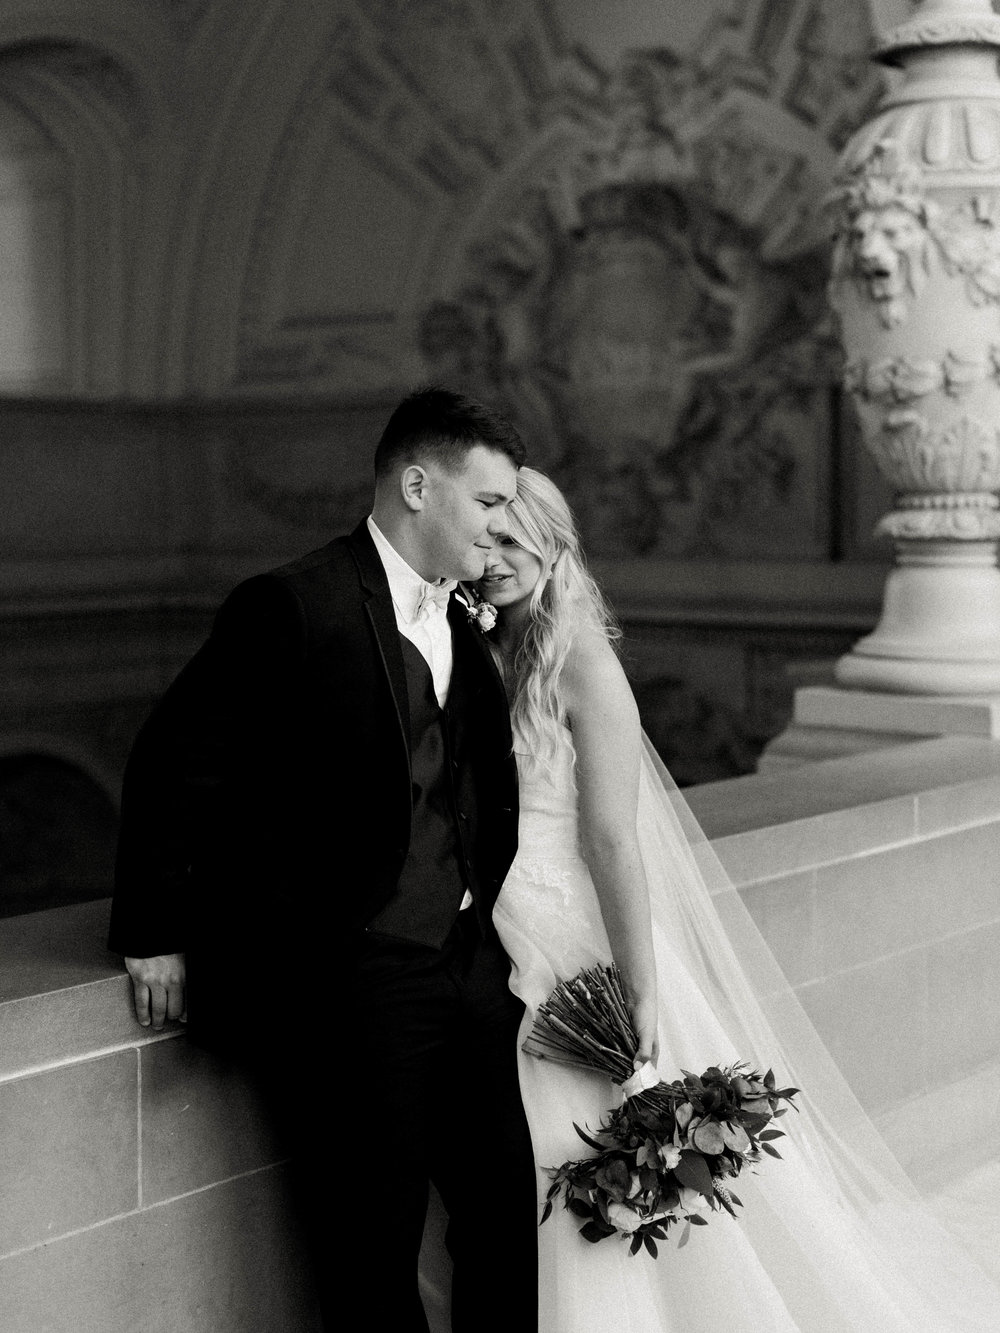 DennisRoyCoronel_Photography_SanFranciscoCityHall_Wedding-61.jpg